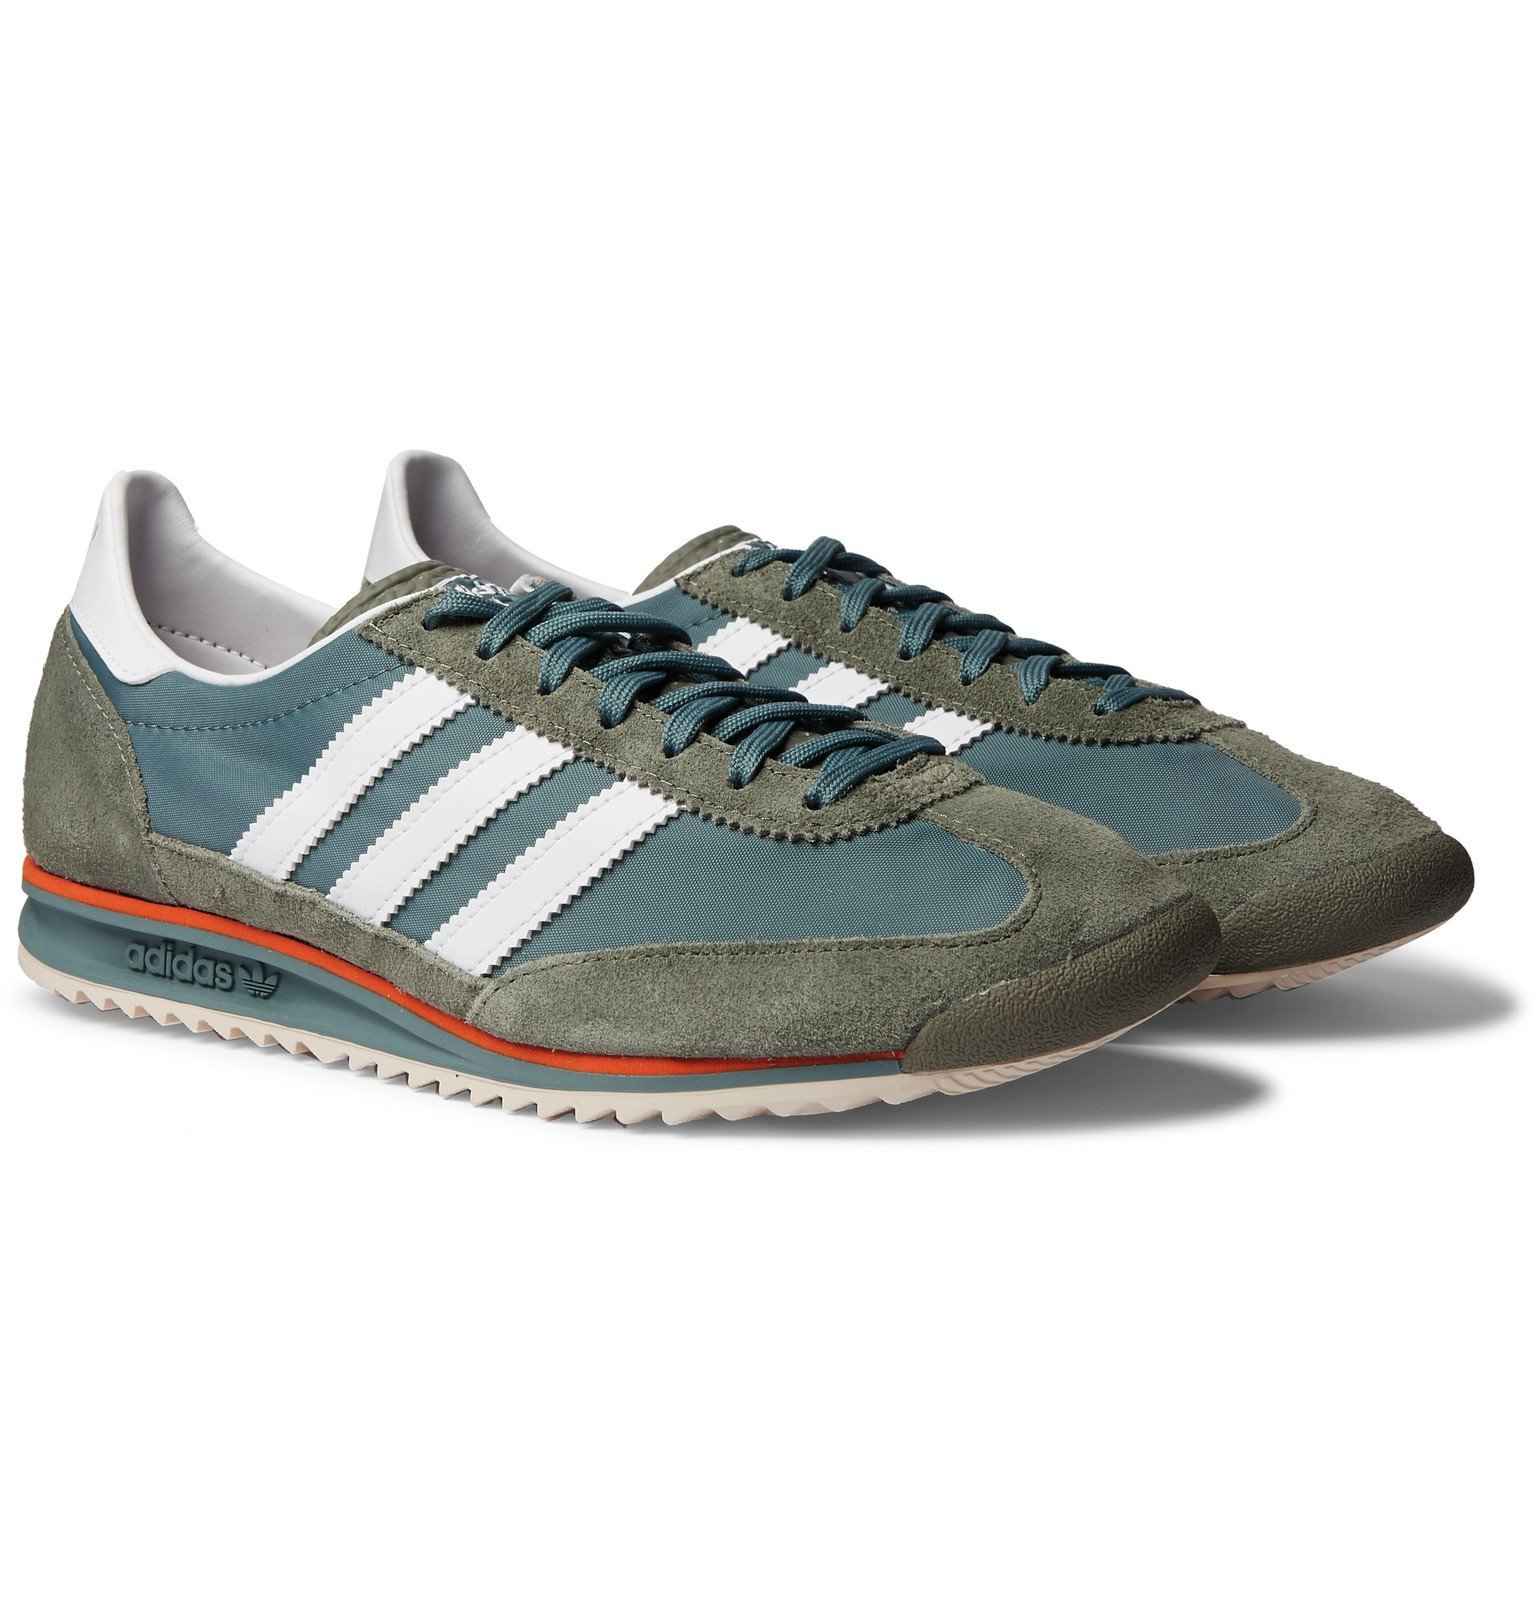 adidas Originals - SL 72 Faux Leather, Faux Suede and Shell Sneakers - Green